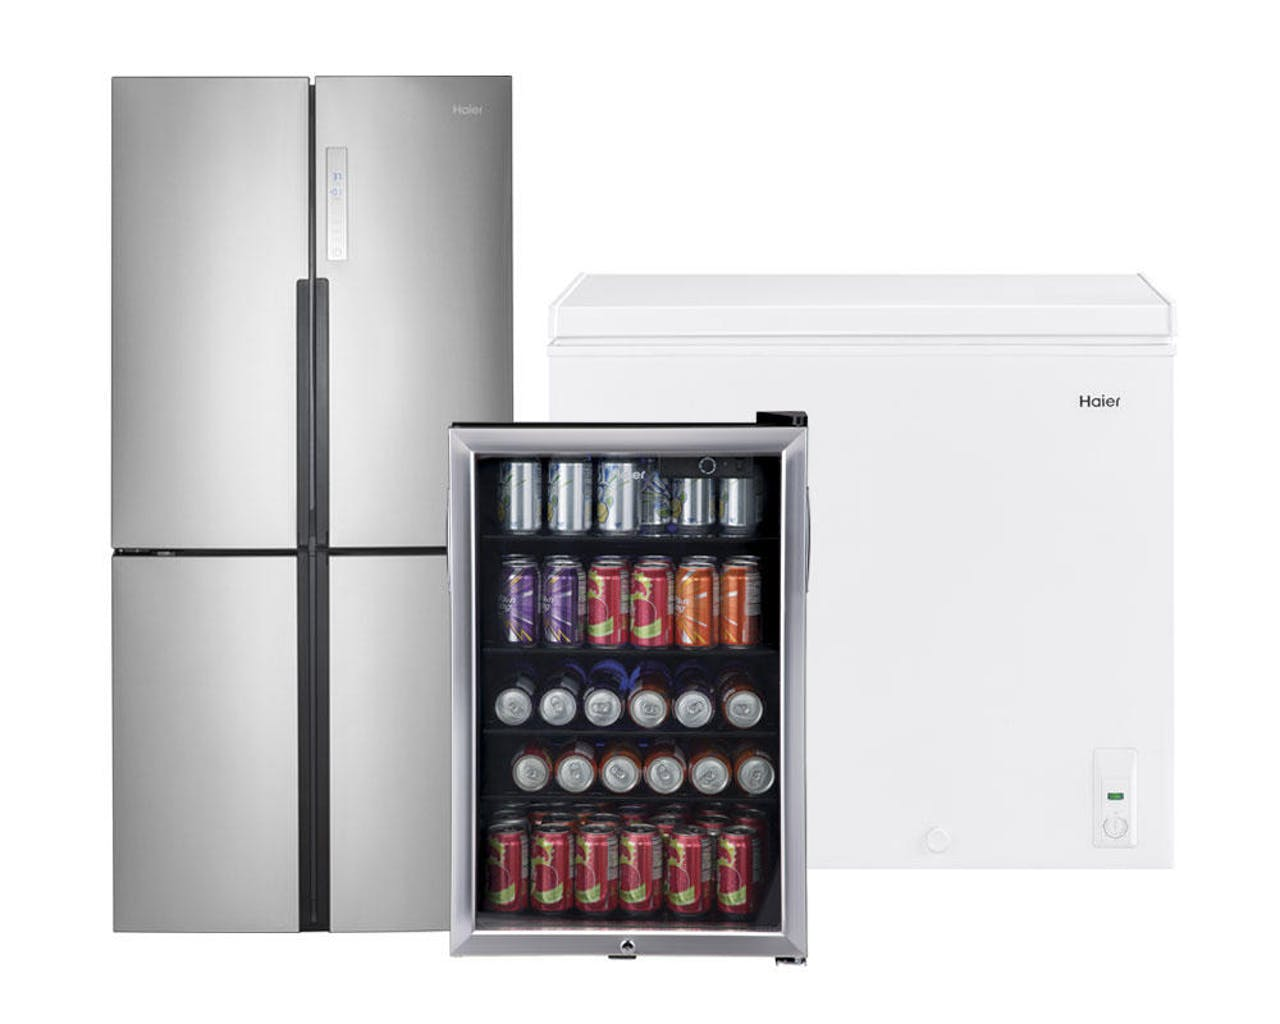 Product support photo of a Haier stainless quad door refrigerator, chest freezer and beverage center